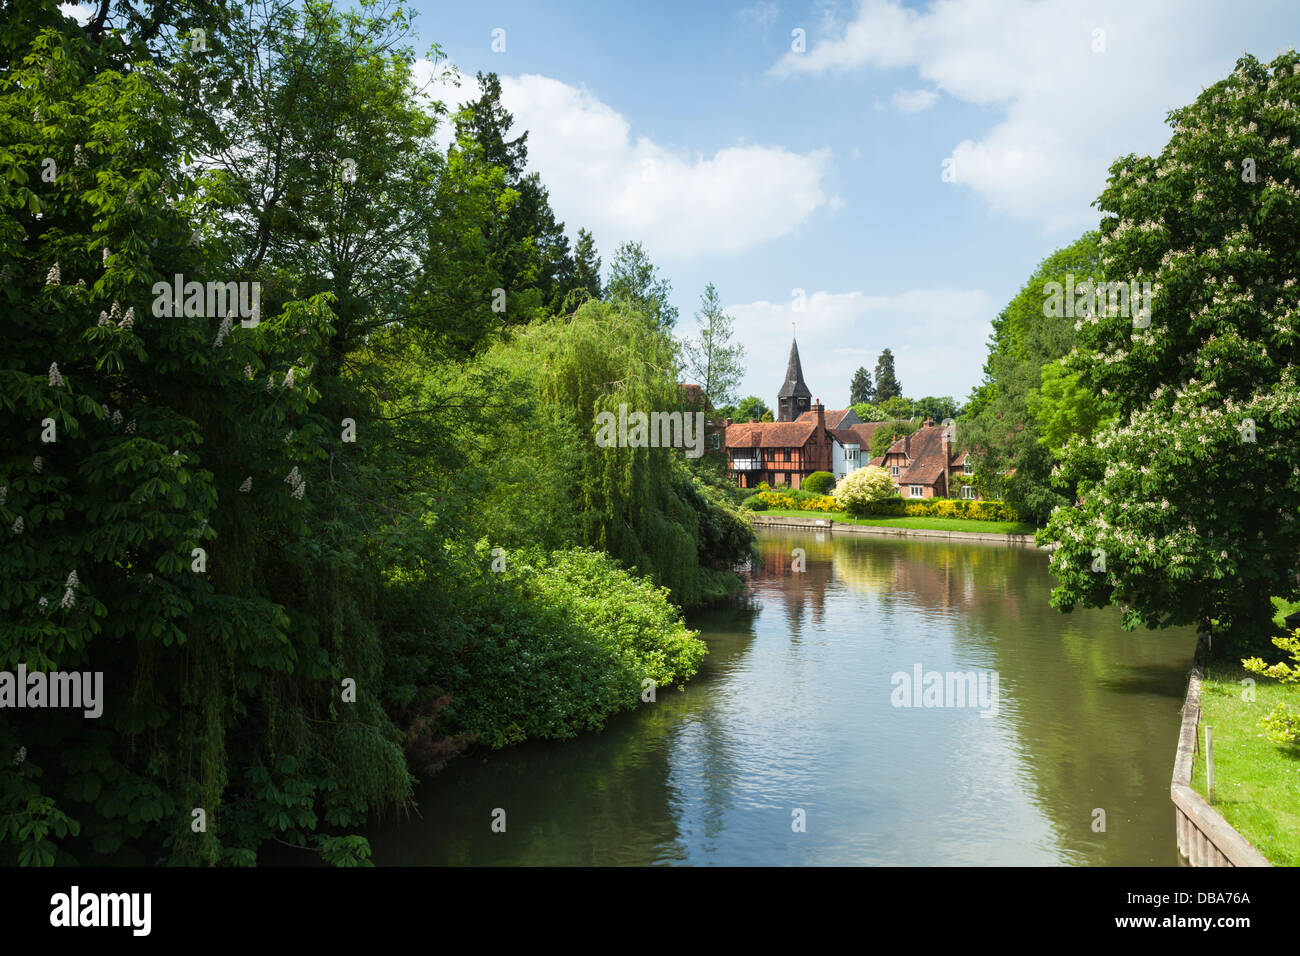 St Mary's church rises above the village of Whitchurch-on-Thames beside the River Thames, Oxfordshire, England - Stock Image